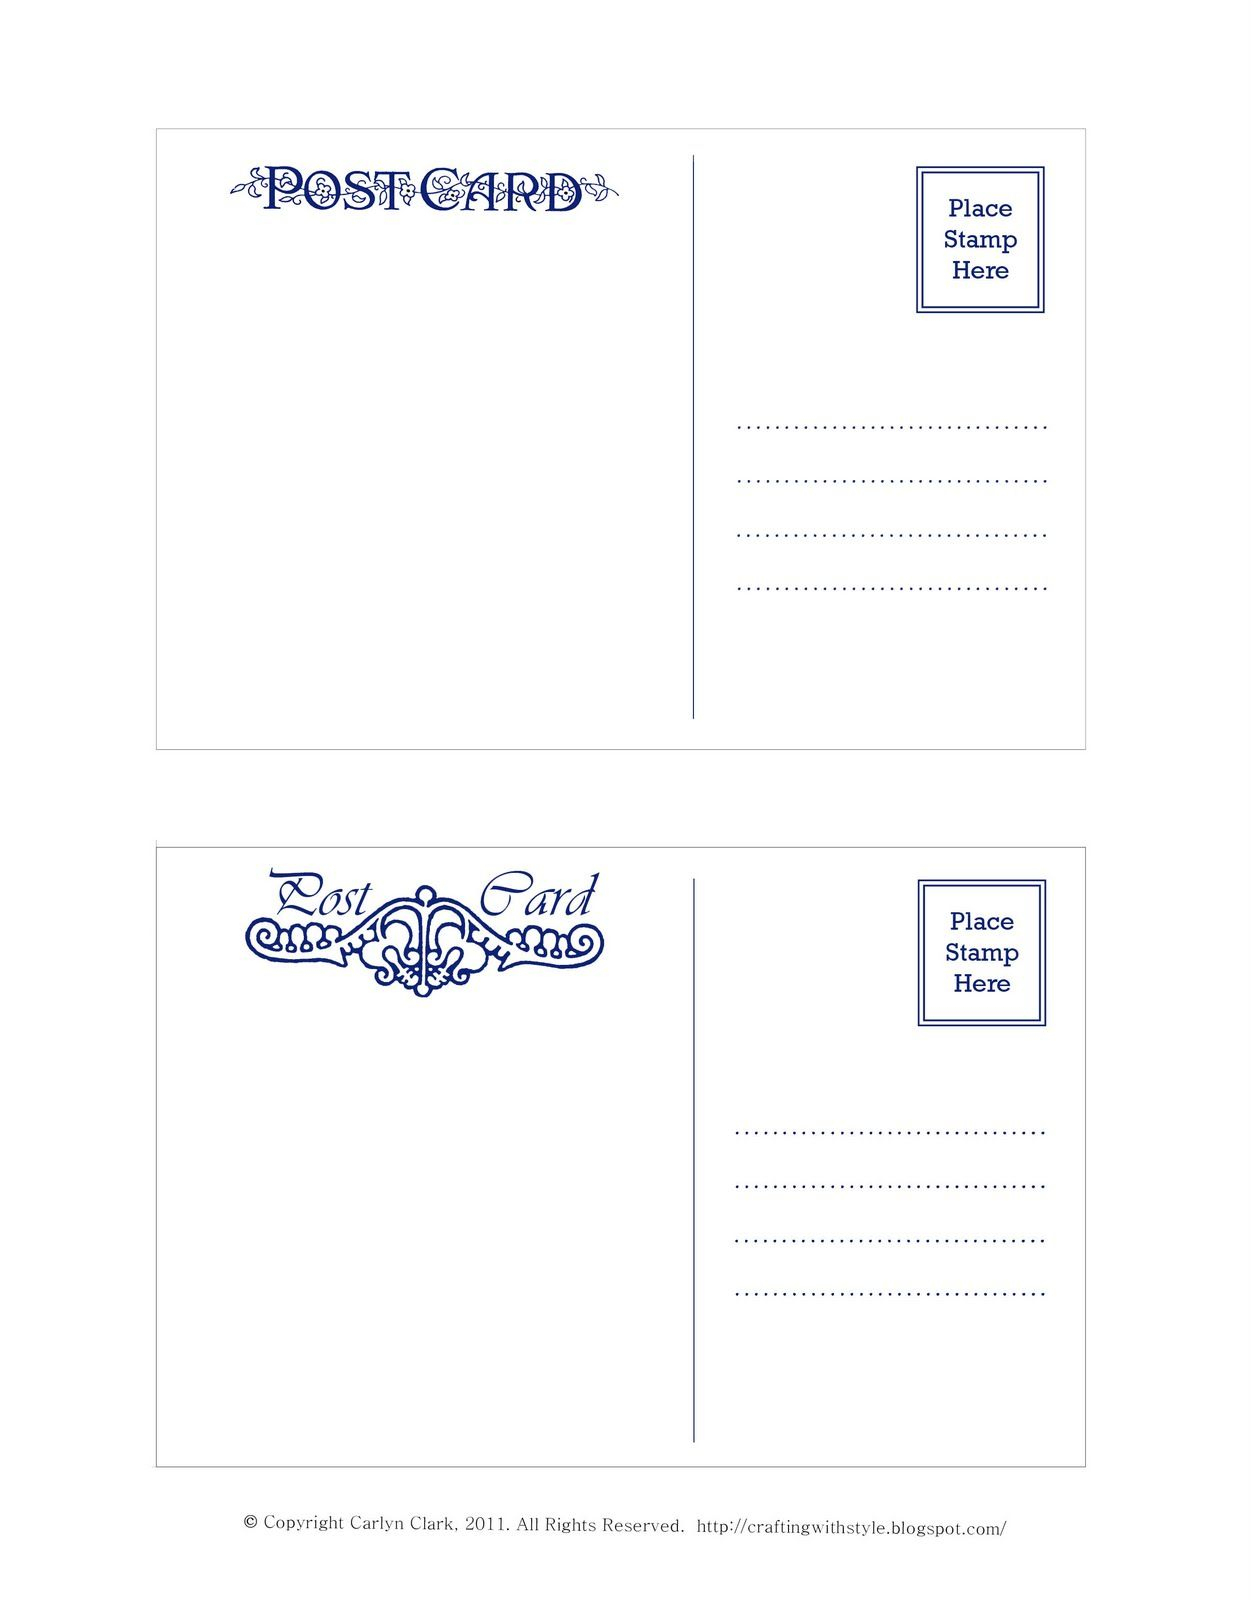 Crafting With Style: Free Postcard Templates | Postcards | Pinterest - Free Blank Printable Postcards